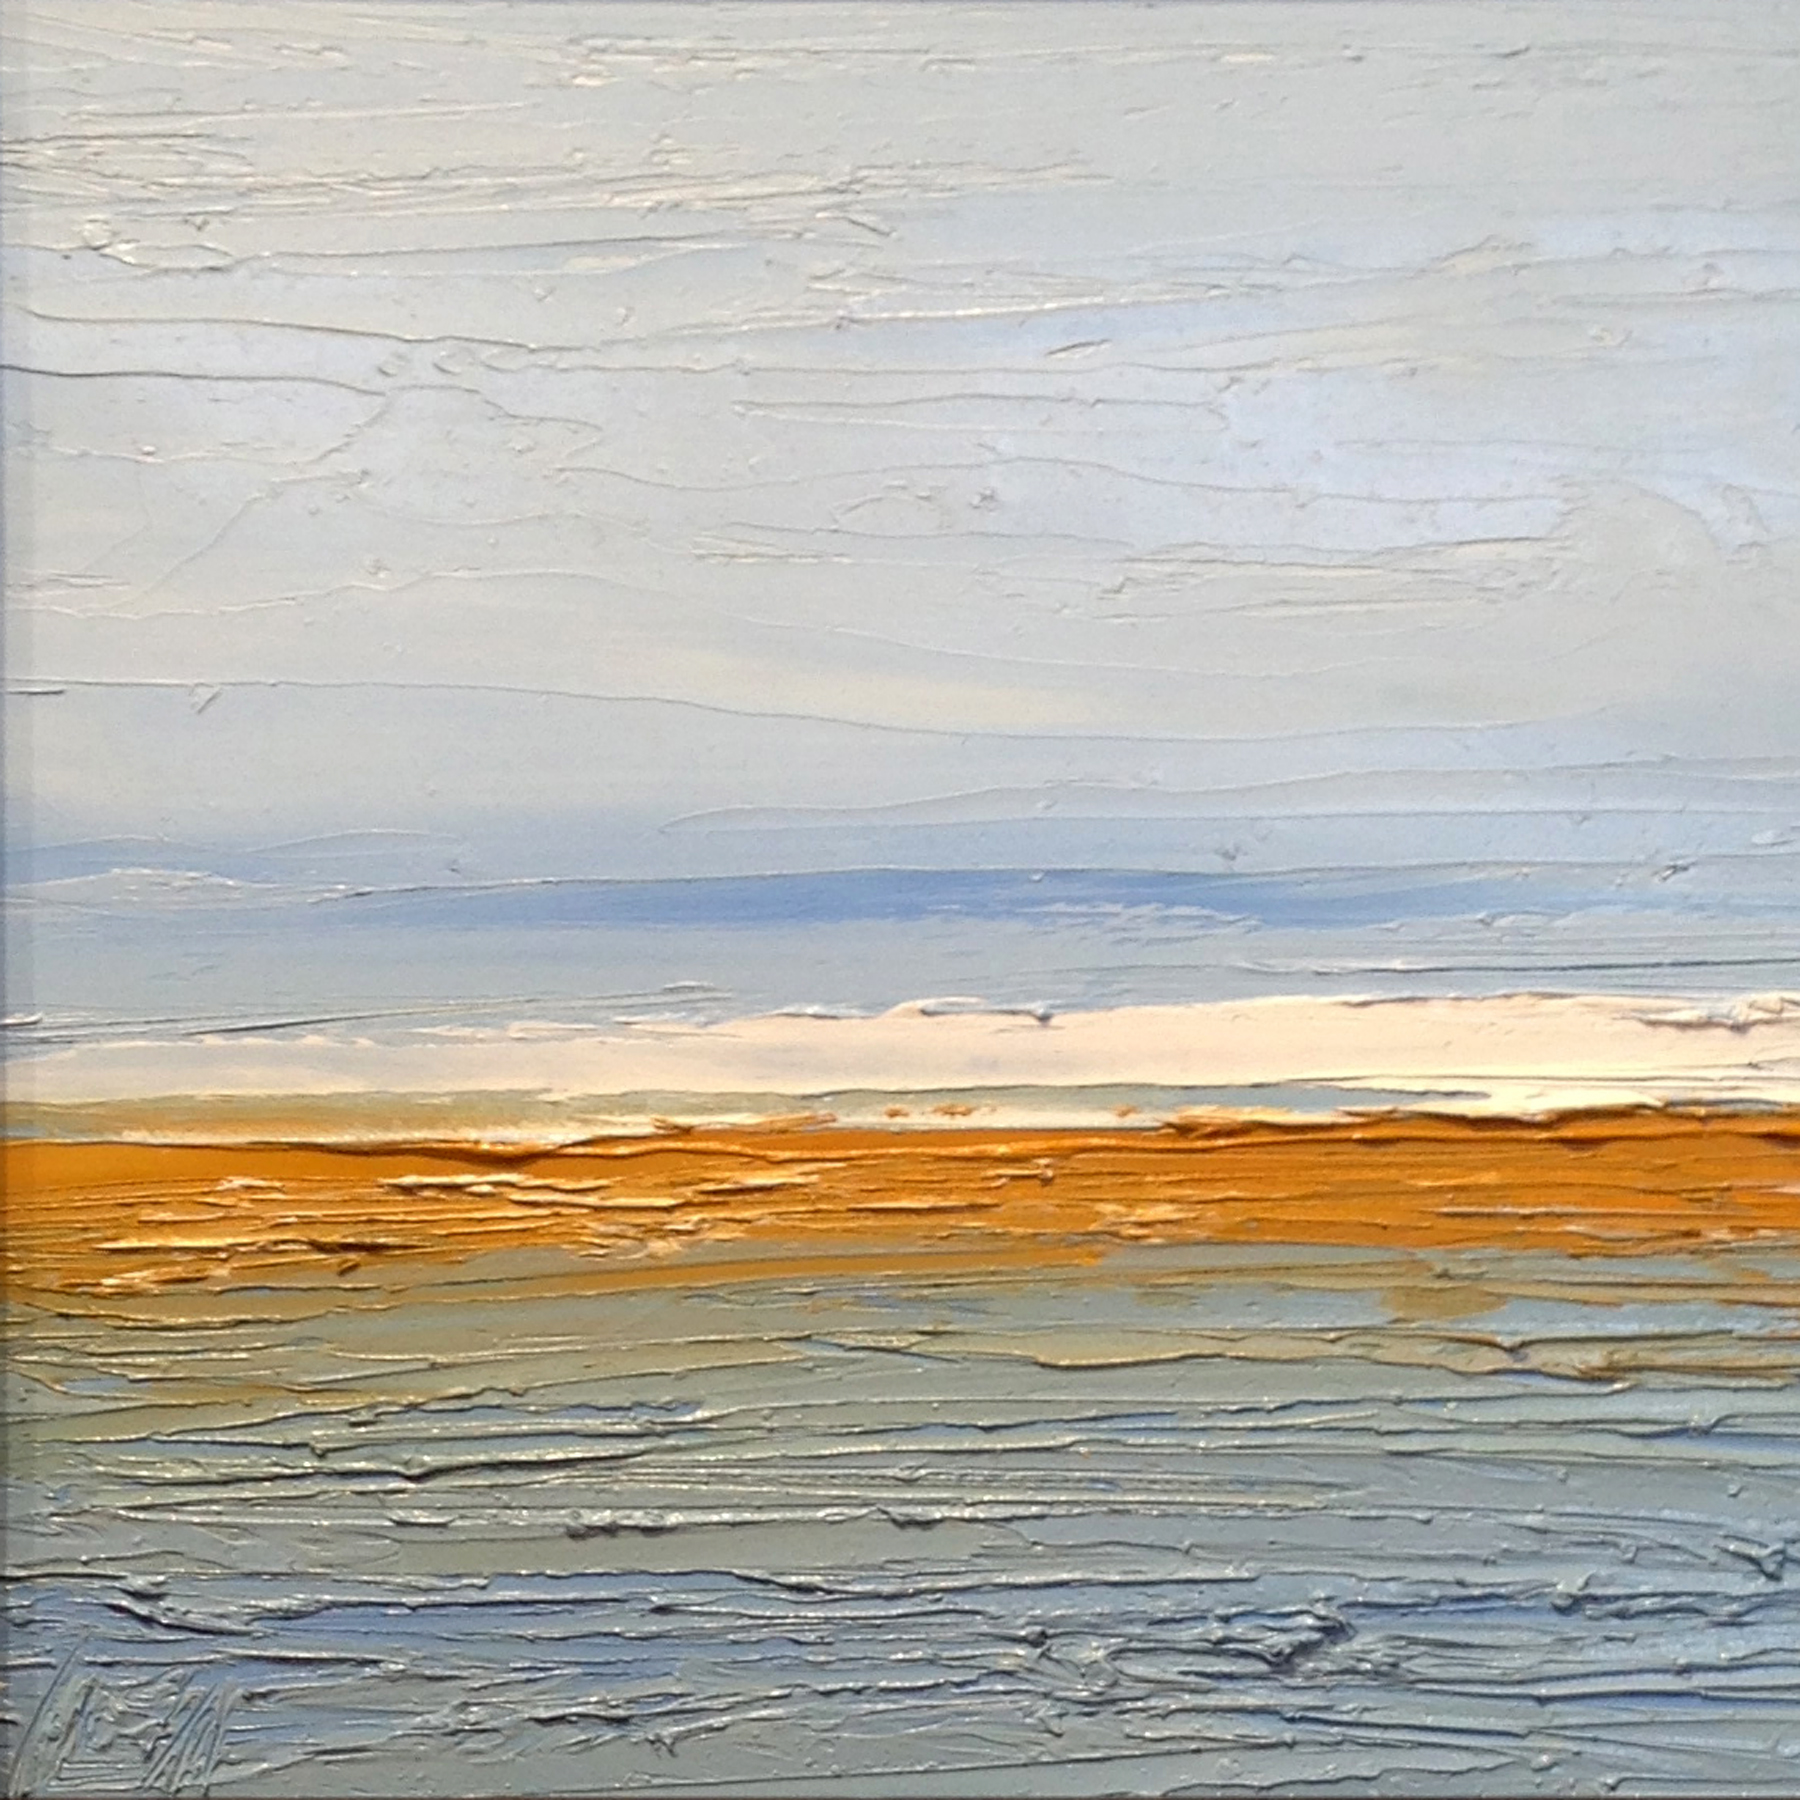 At The Horizon Study 3-12-2014, oil on board, 8 by 8 inches, 2014 - $750